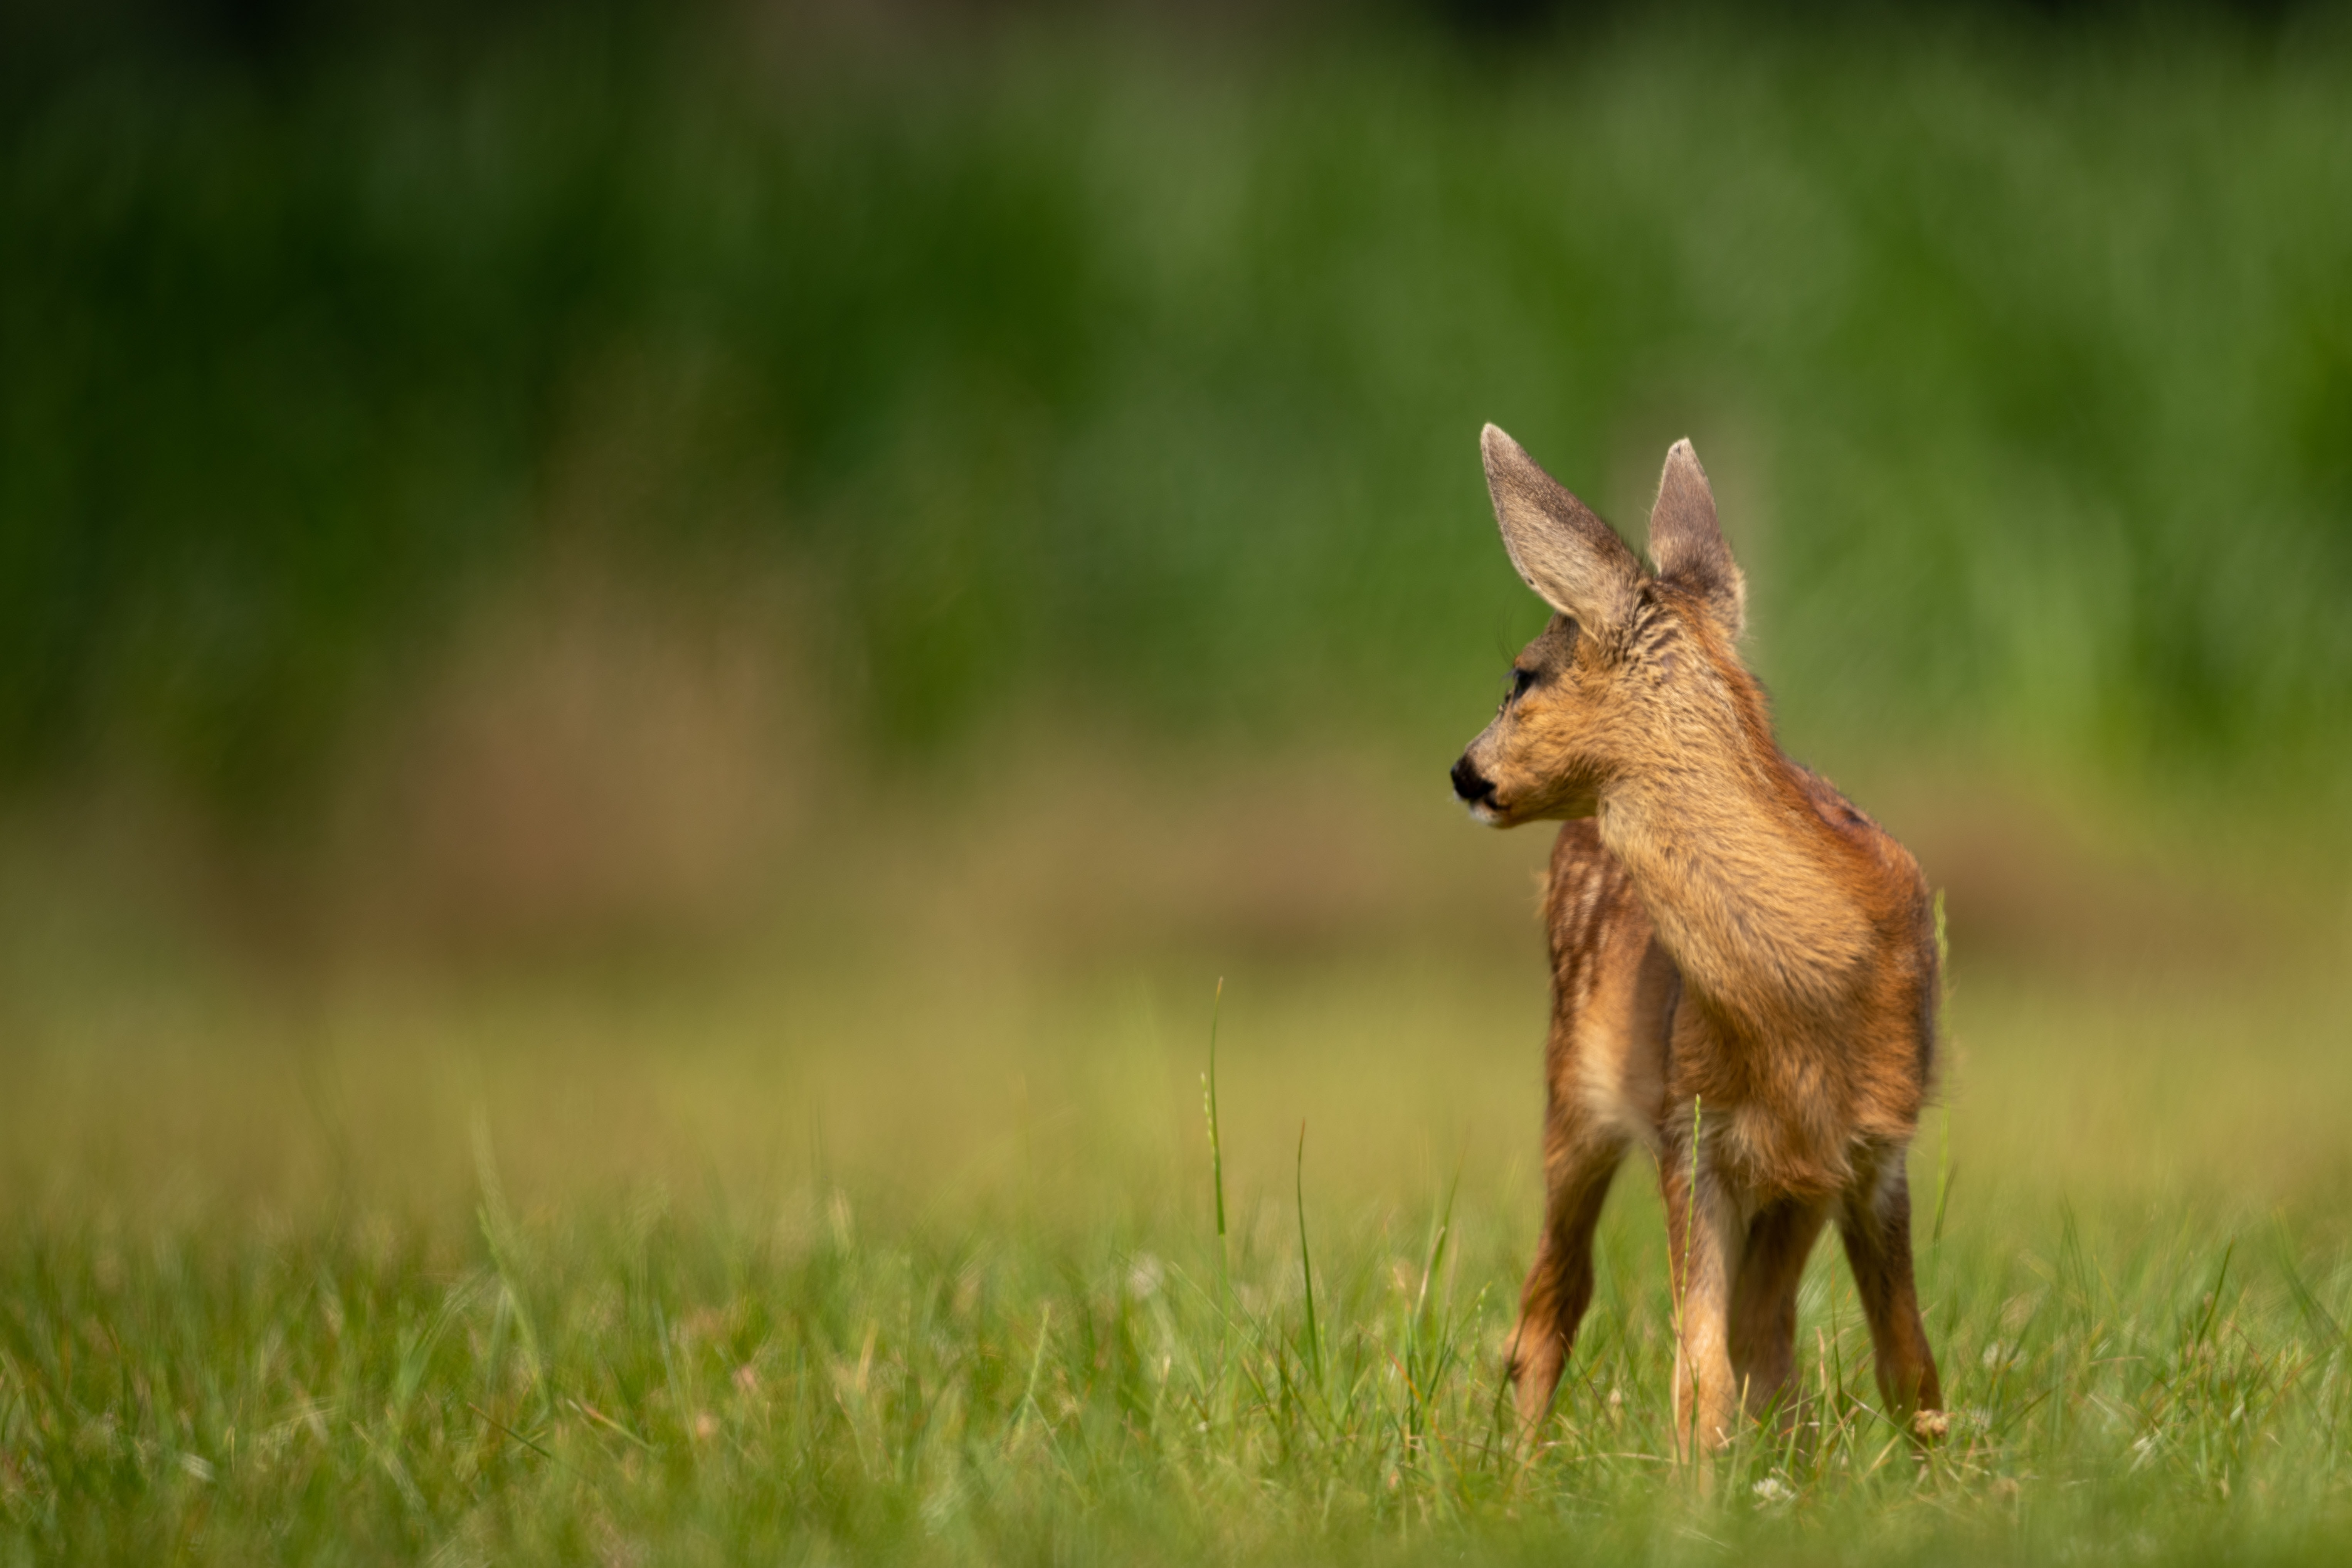 white spotted deer calf on green grass field